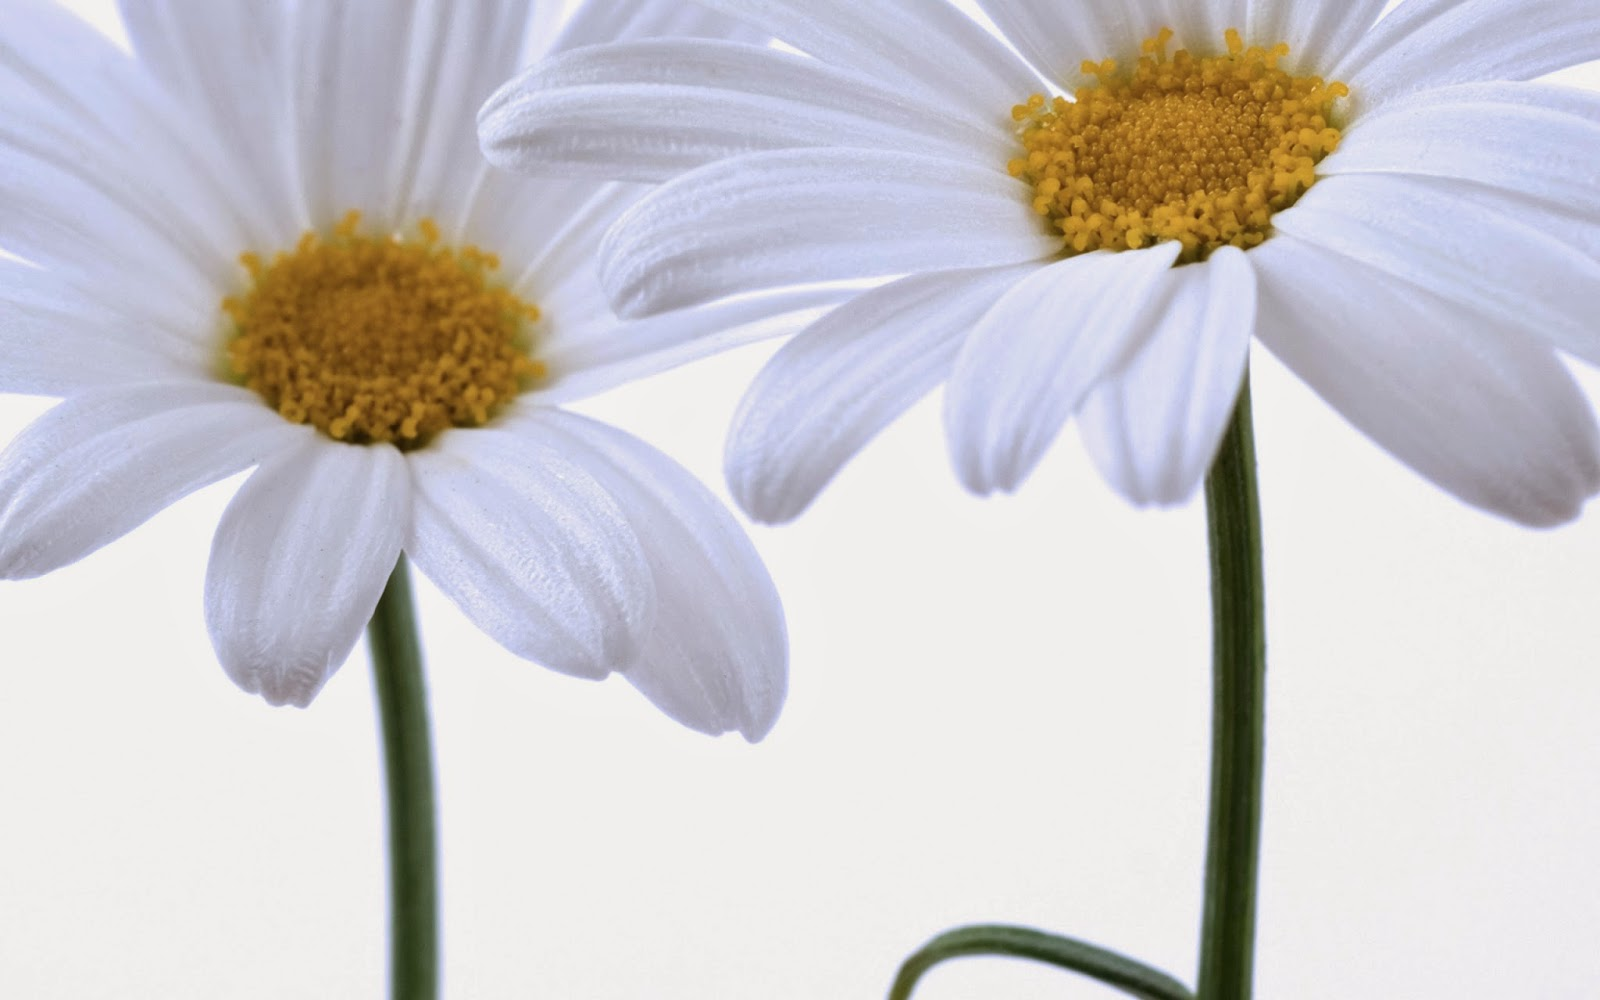 Gerbera-Daisy-flower-picture-HD-for-Facebook-sharing.jpg